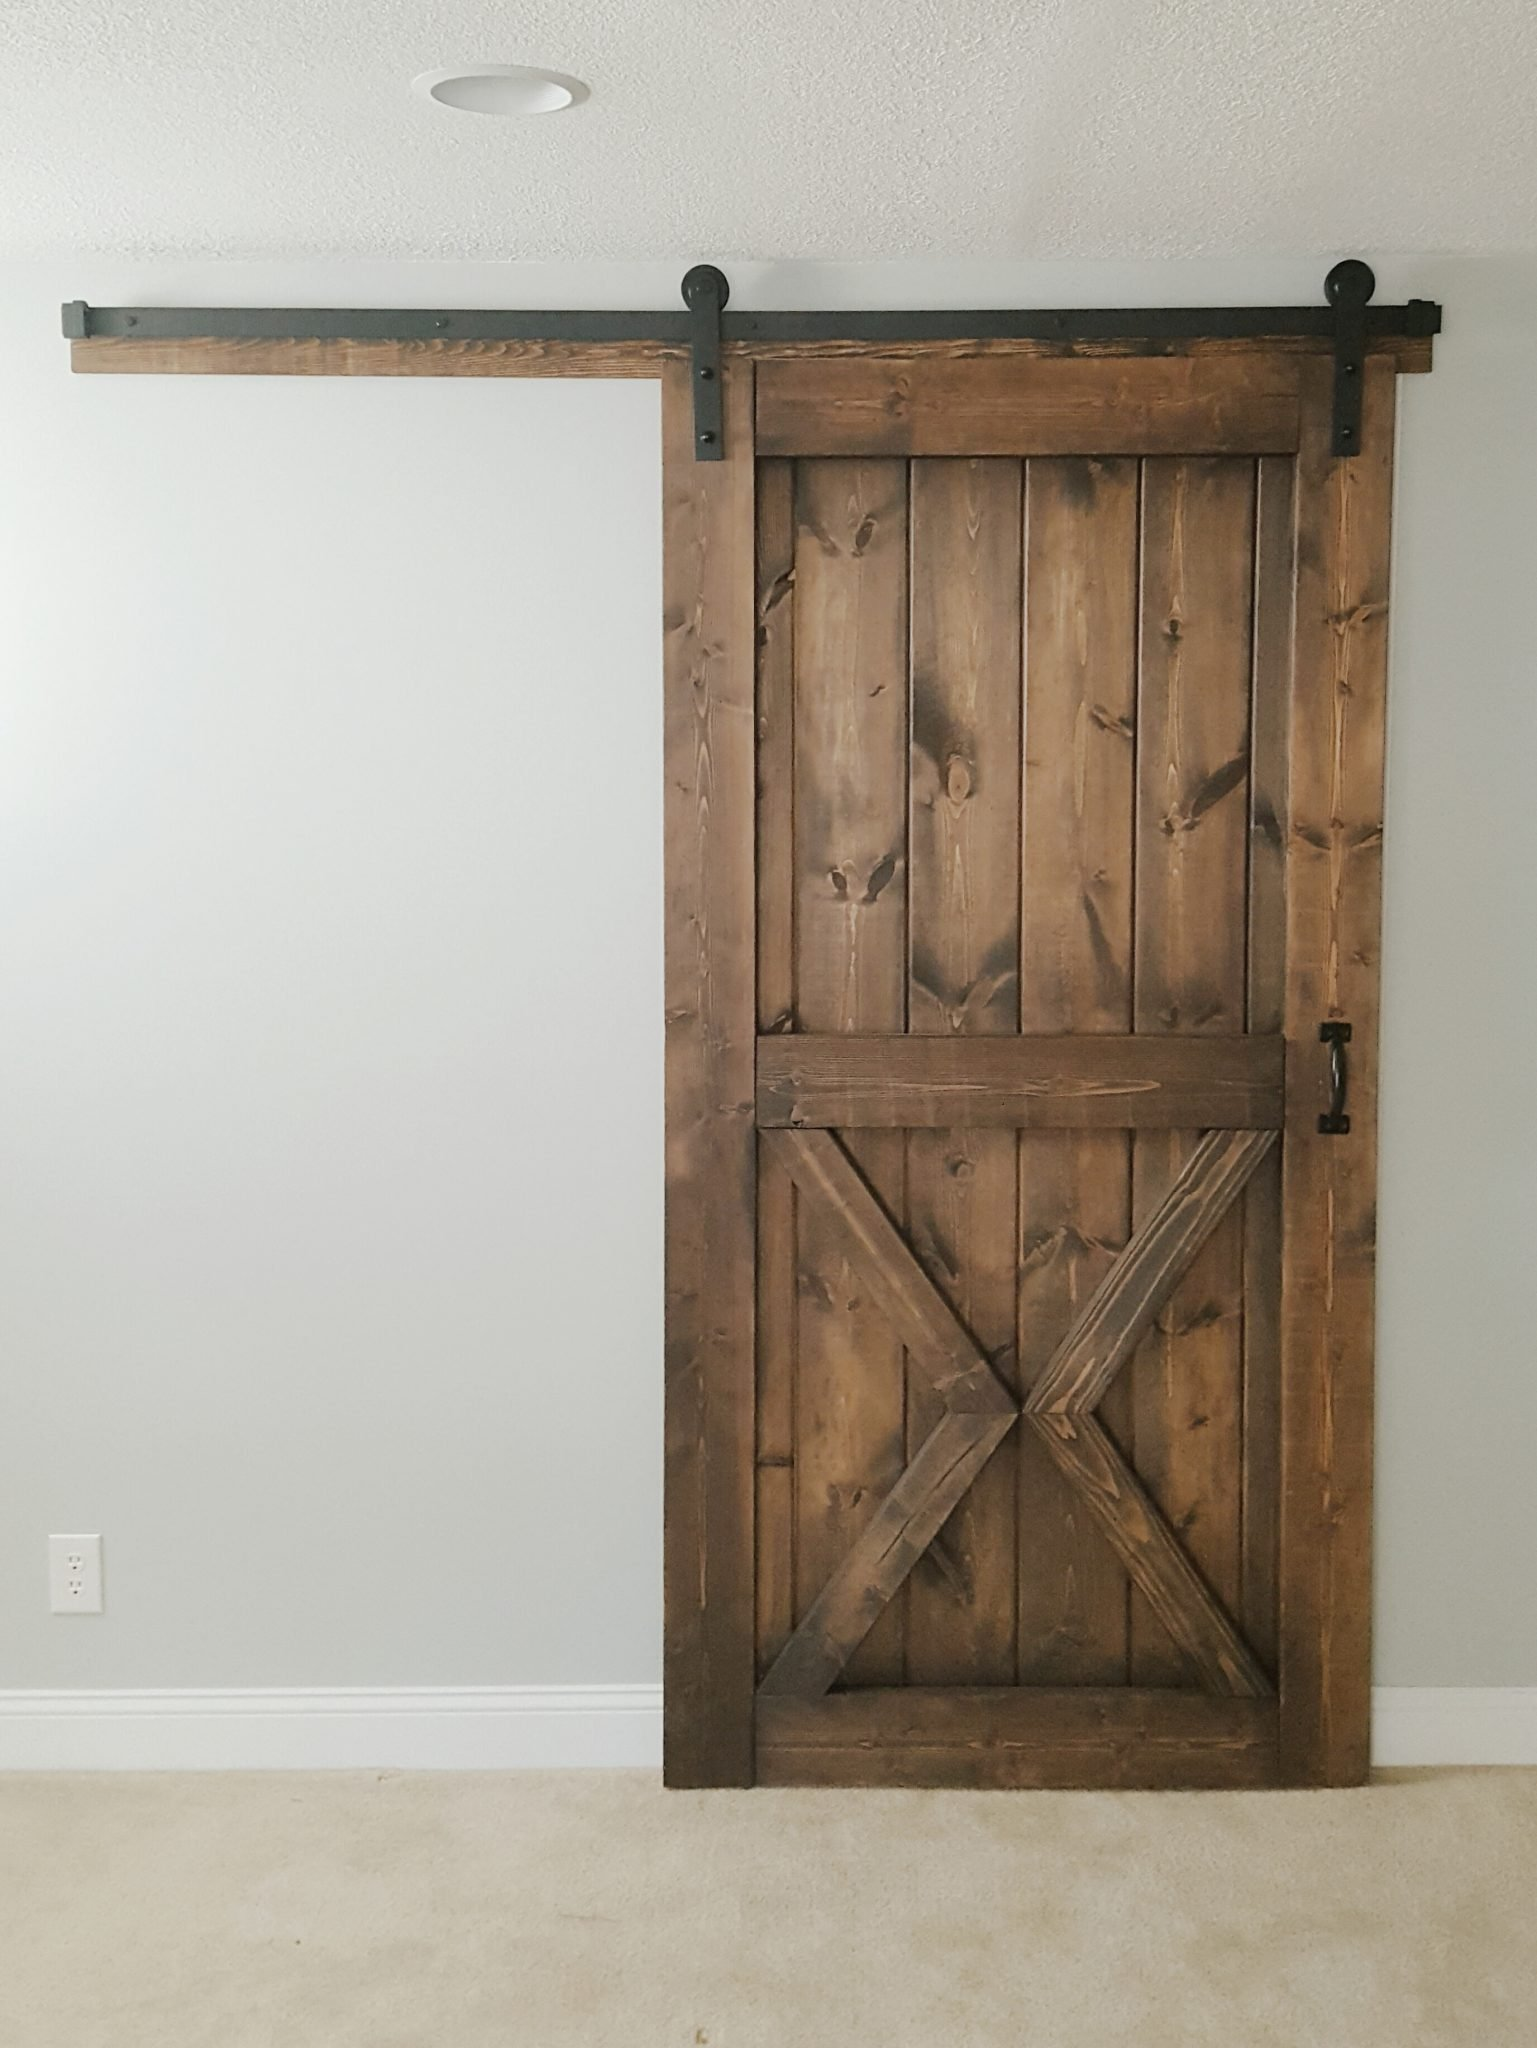 Barn door sliding 2 panel x style walston door company for The barn door company